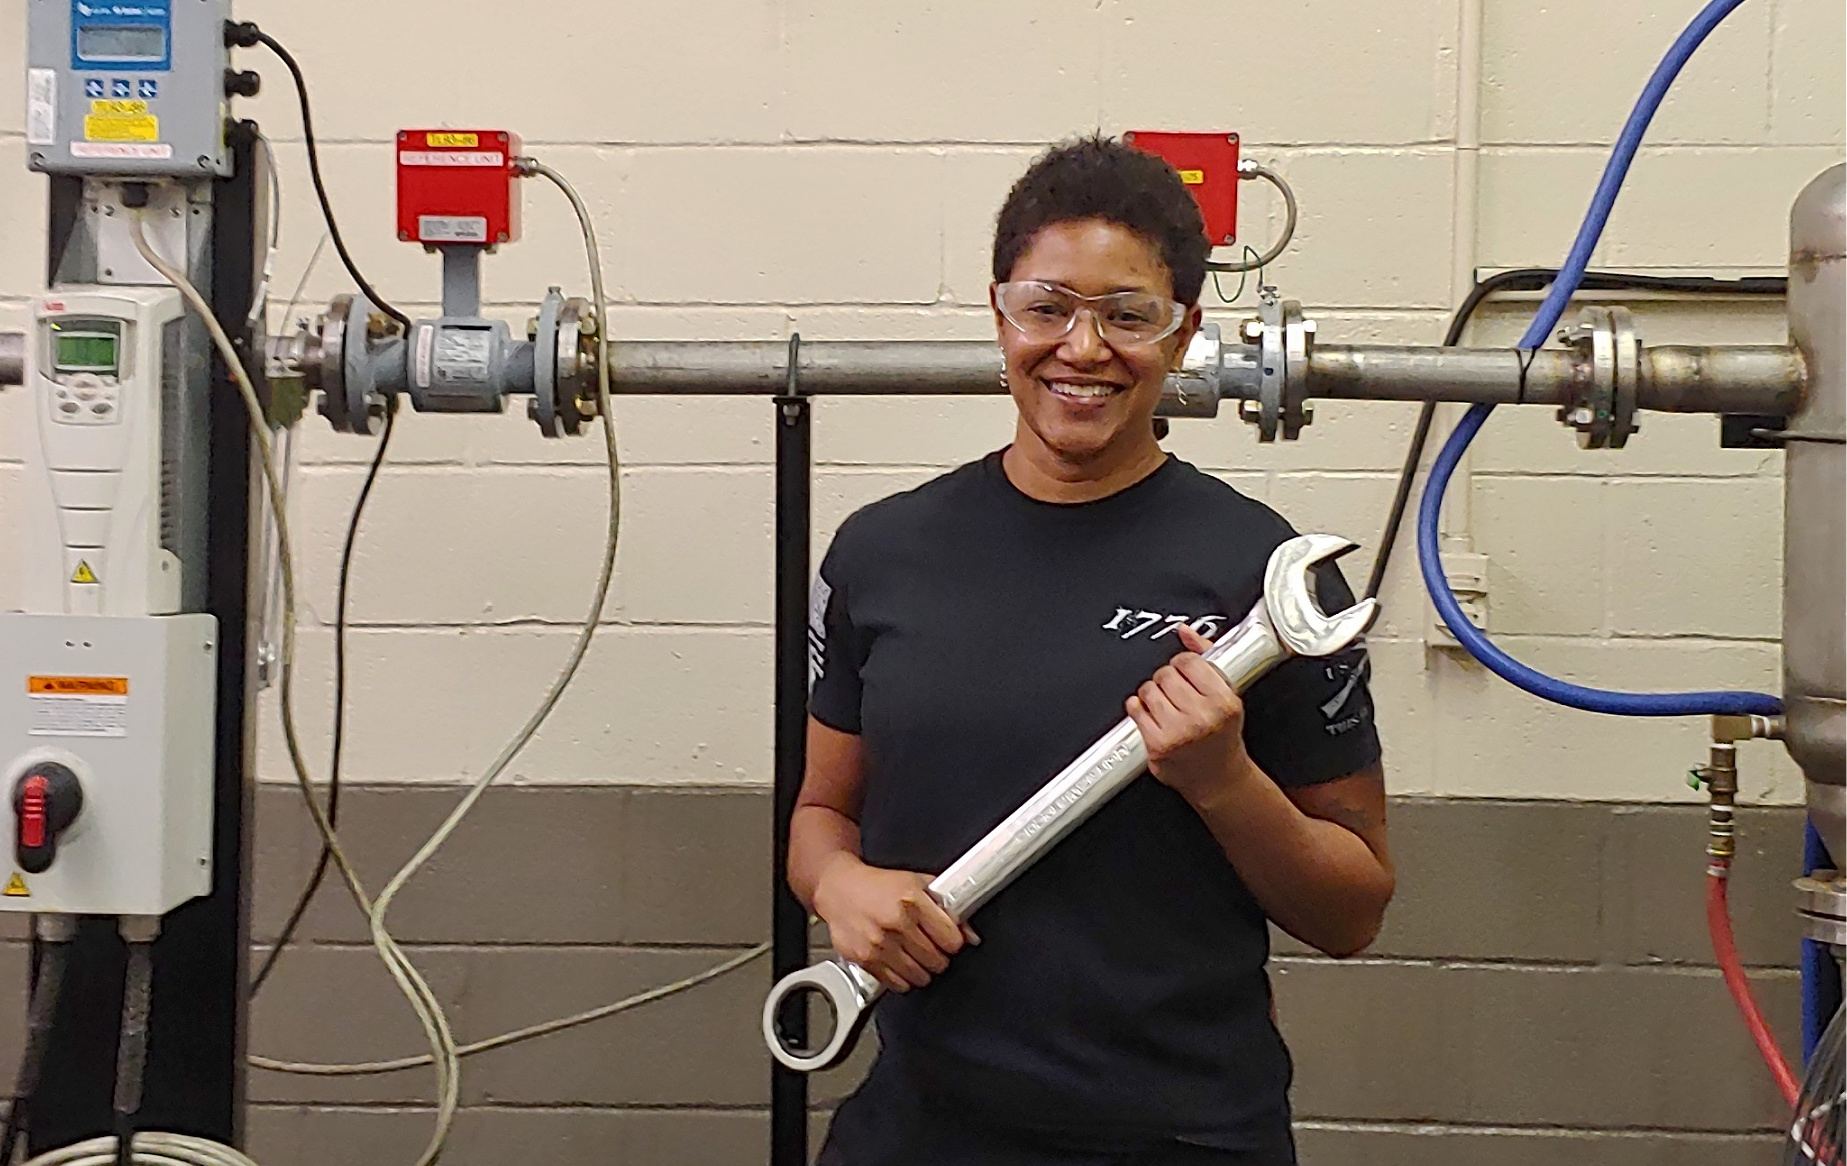 Electrical and electronics engineering technician Tracy Wilson with a wrench